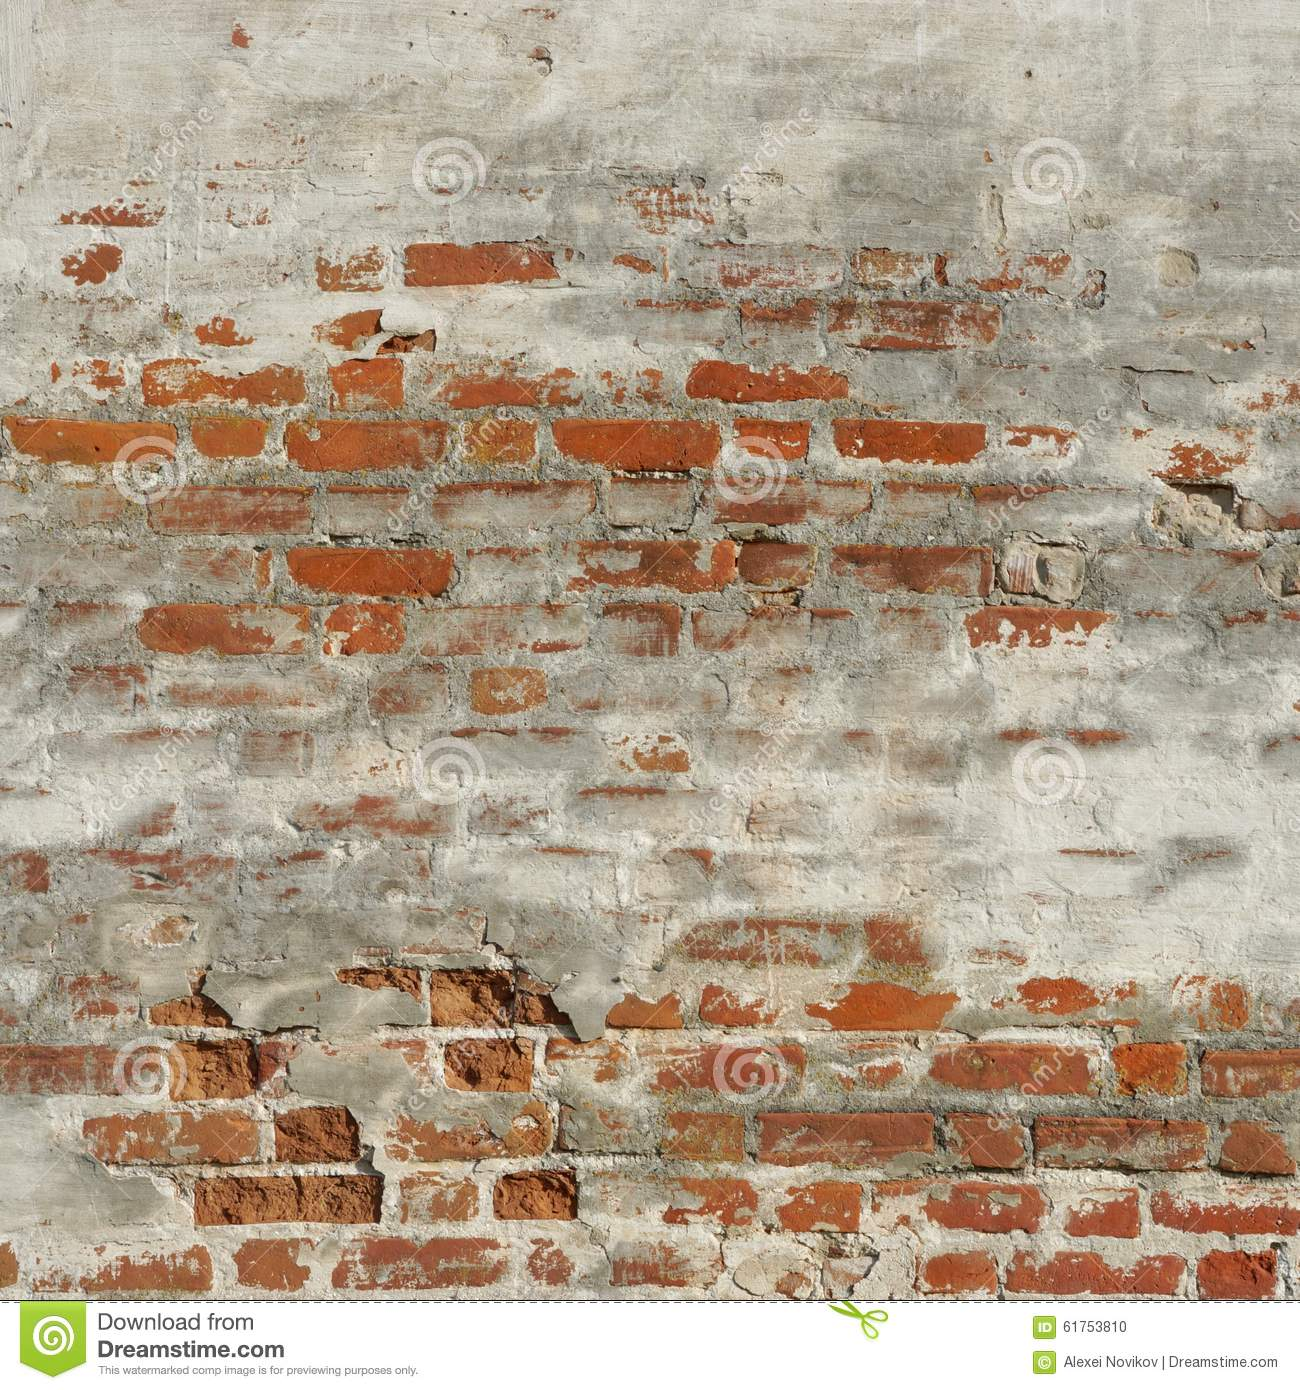 Rust Cement Wall : Red brick wall with damaged white plaster background stock